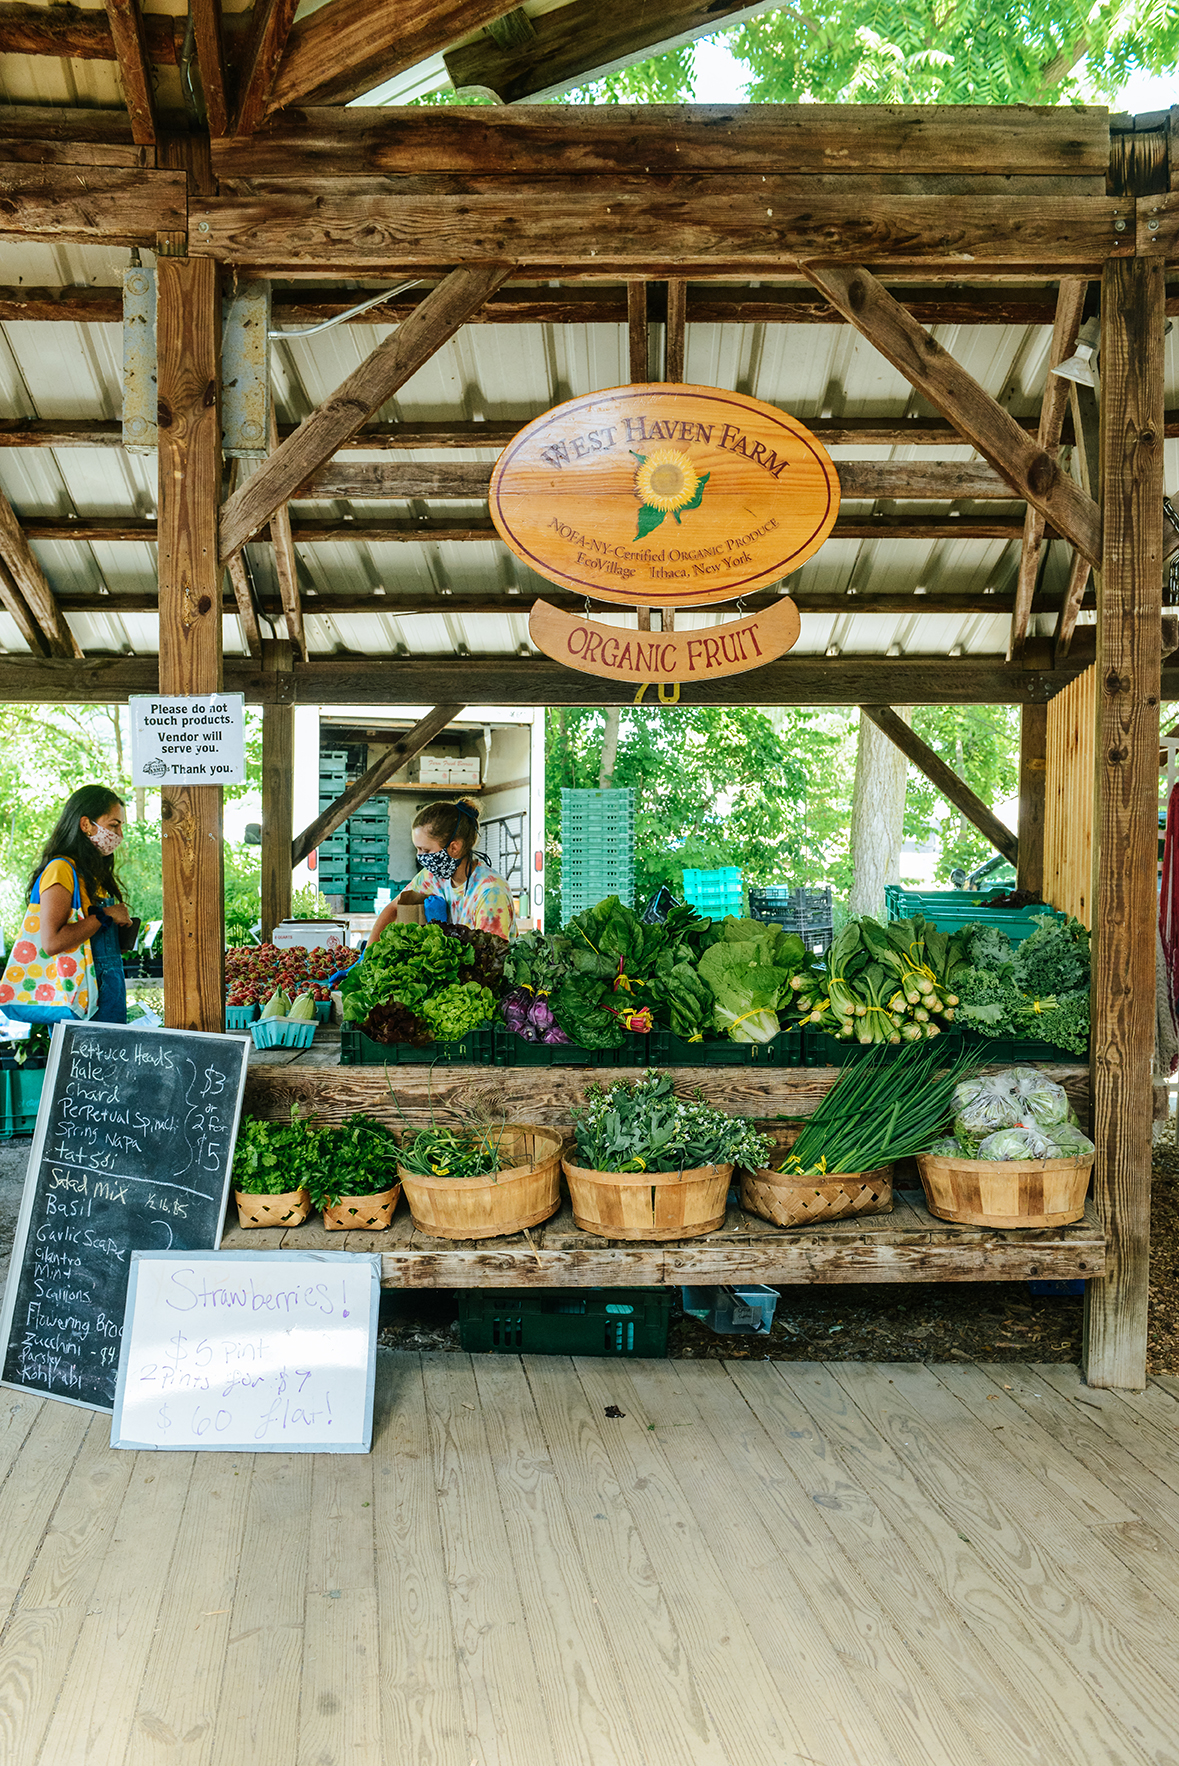 The Ithaca Farmer's Market